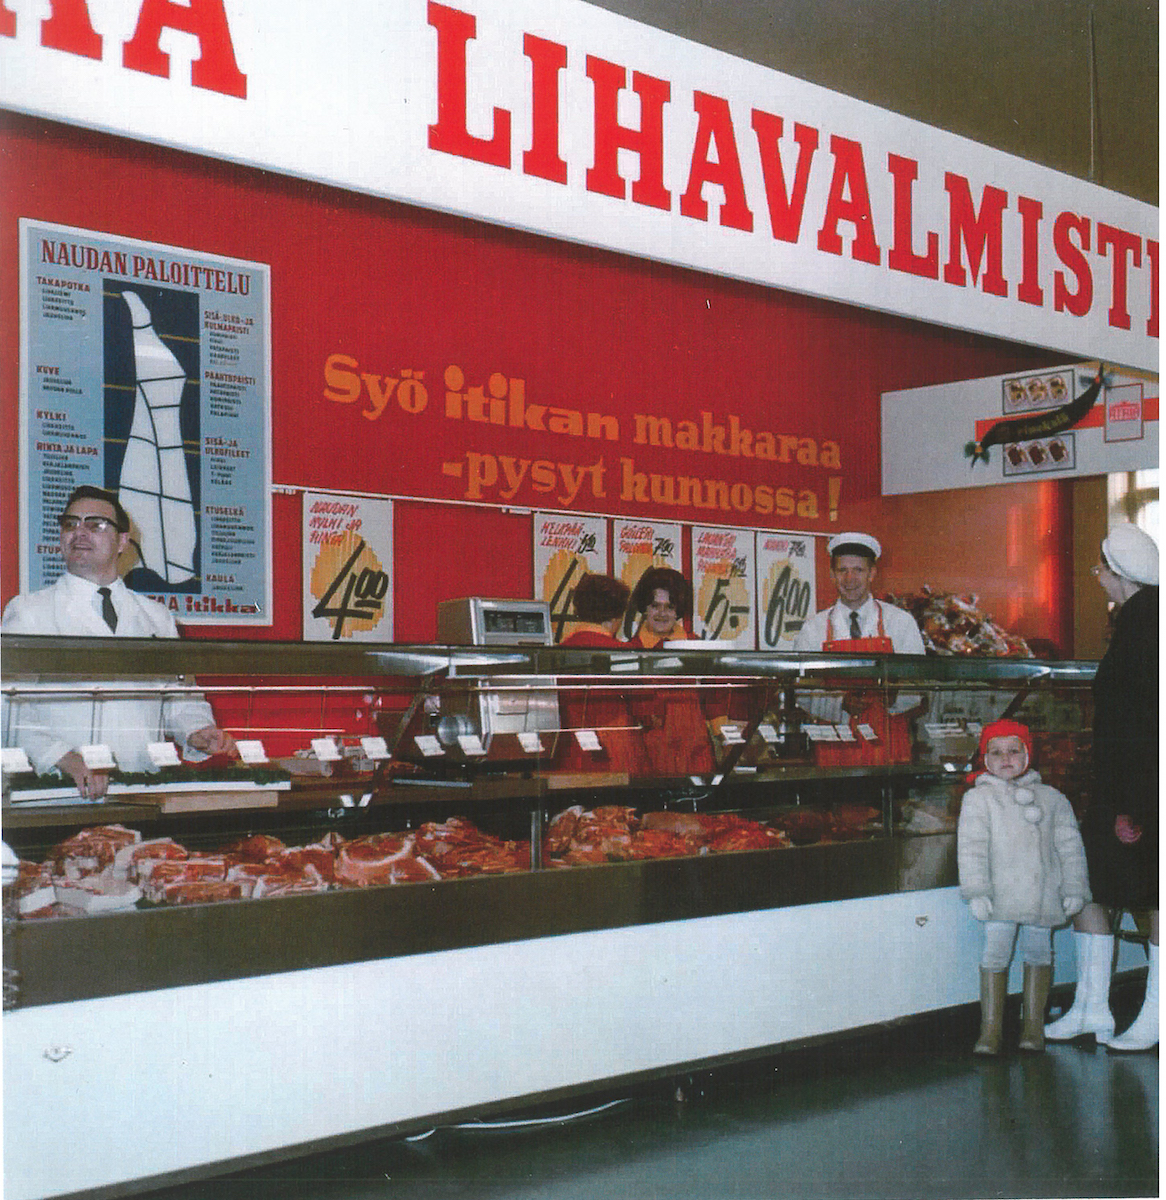 "Itikka achieved good visibility in locations such as the Seinäjoki Säästömarketti (SavingsMarket) The familiar advertising slogan is on the back wall -""When eating Itikka sausage, you keep in good shape!"""